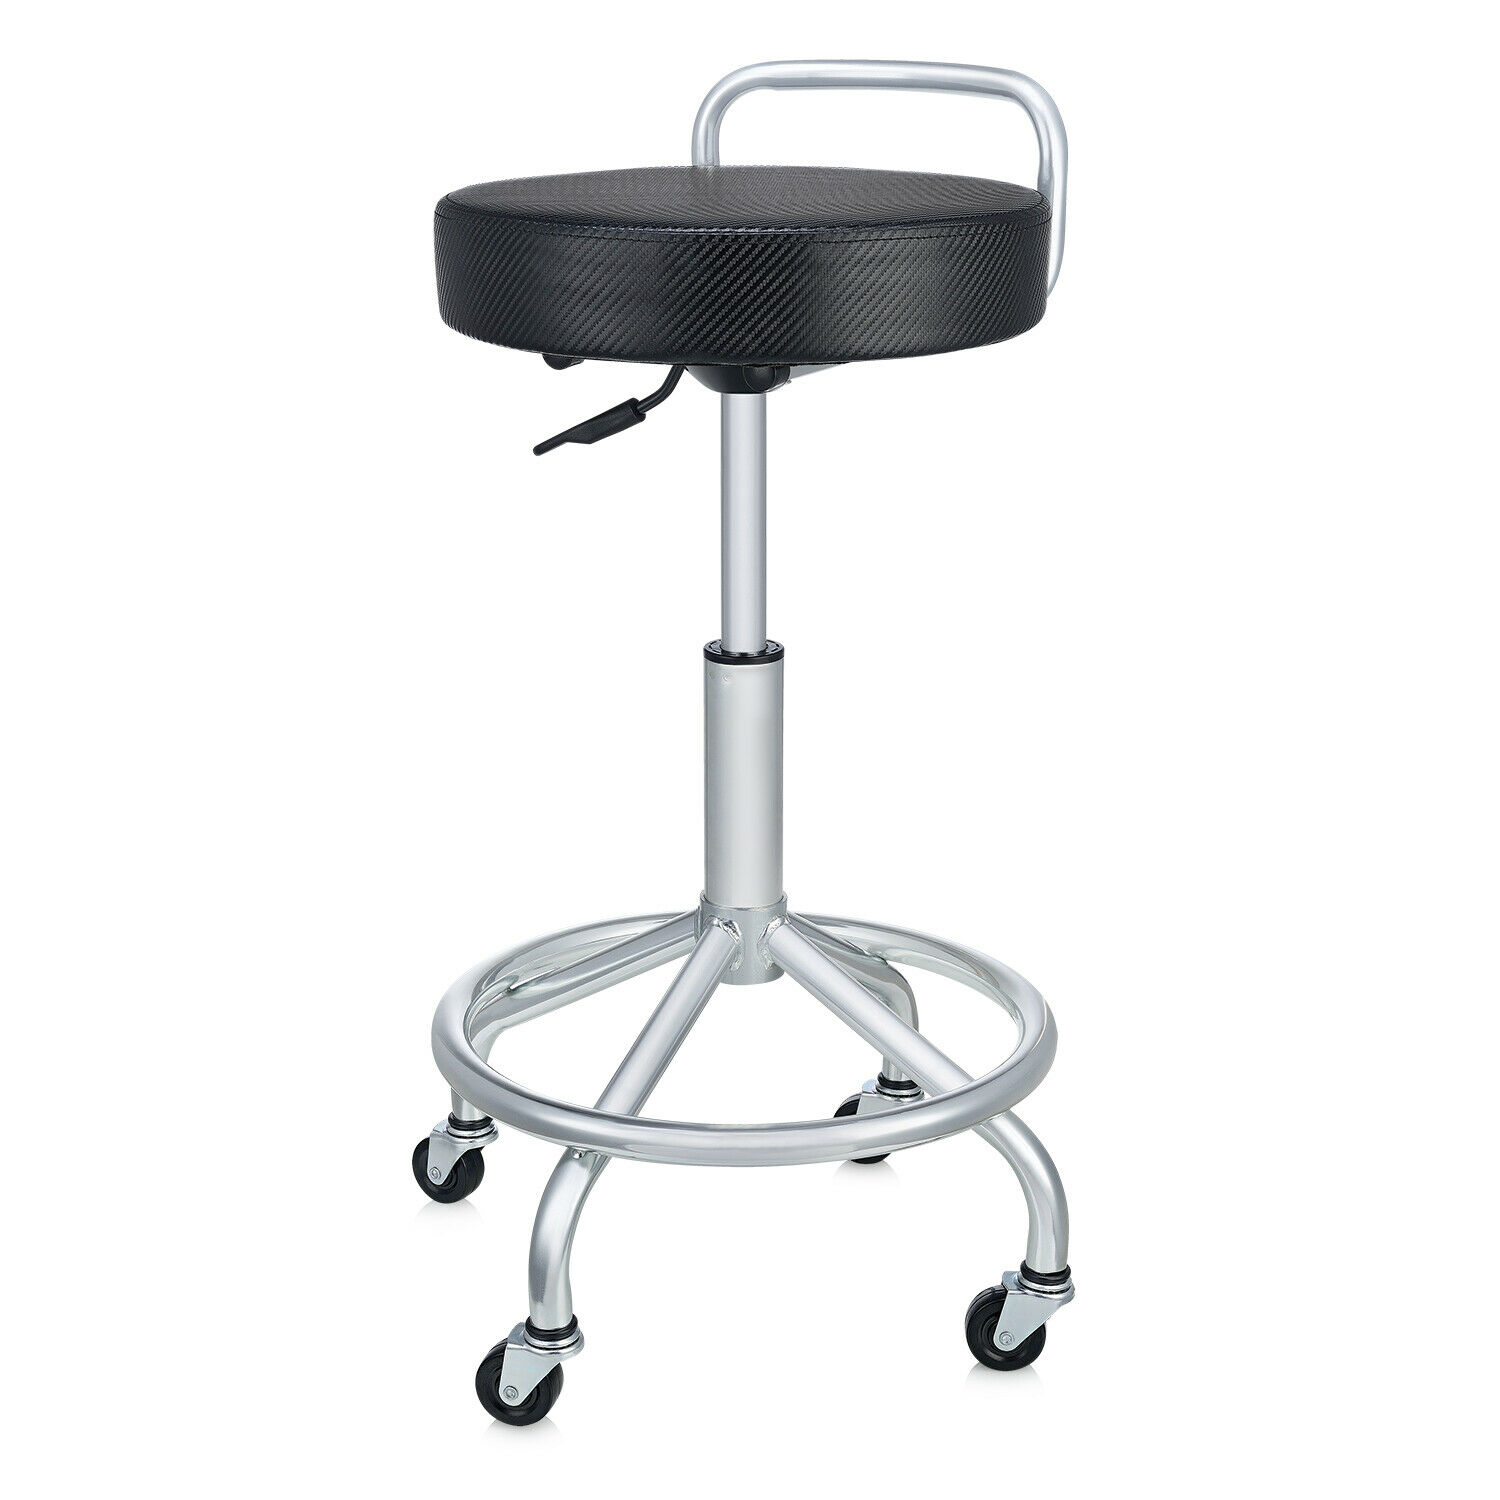 SEVILLE CLASSICS ULTRAHD CUSHIONED PNEUMATIC WORK STOOL, BLACK Automotive Tools & Supplies